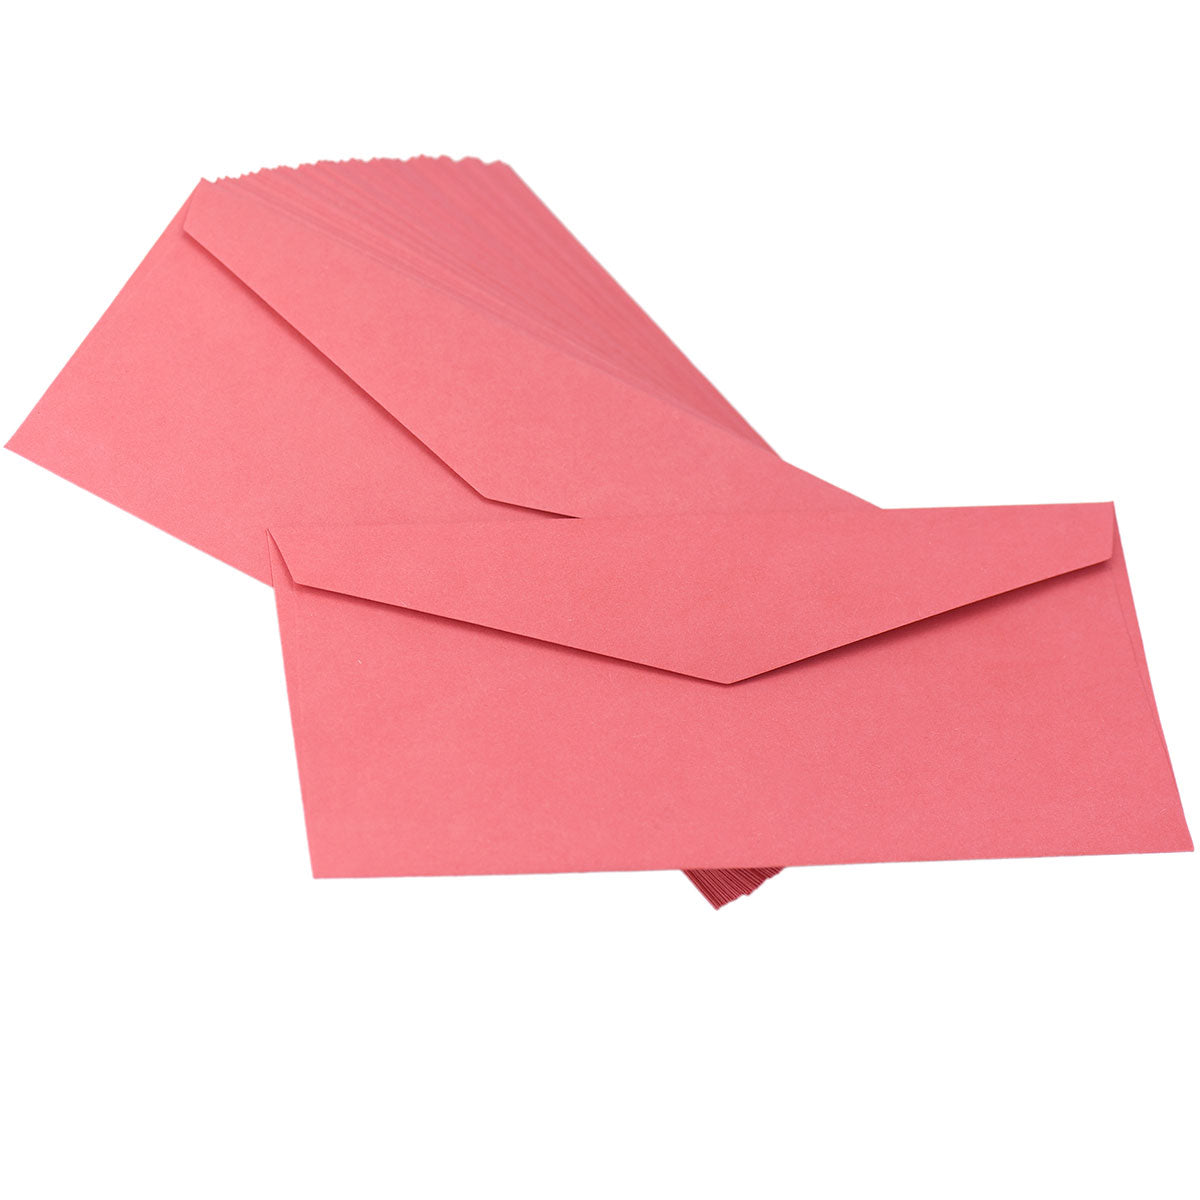 50 Red Kraft Paper Letter Envelopes